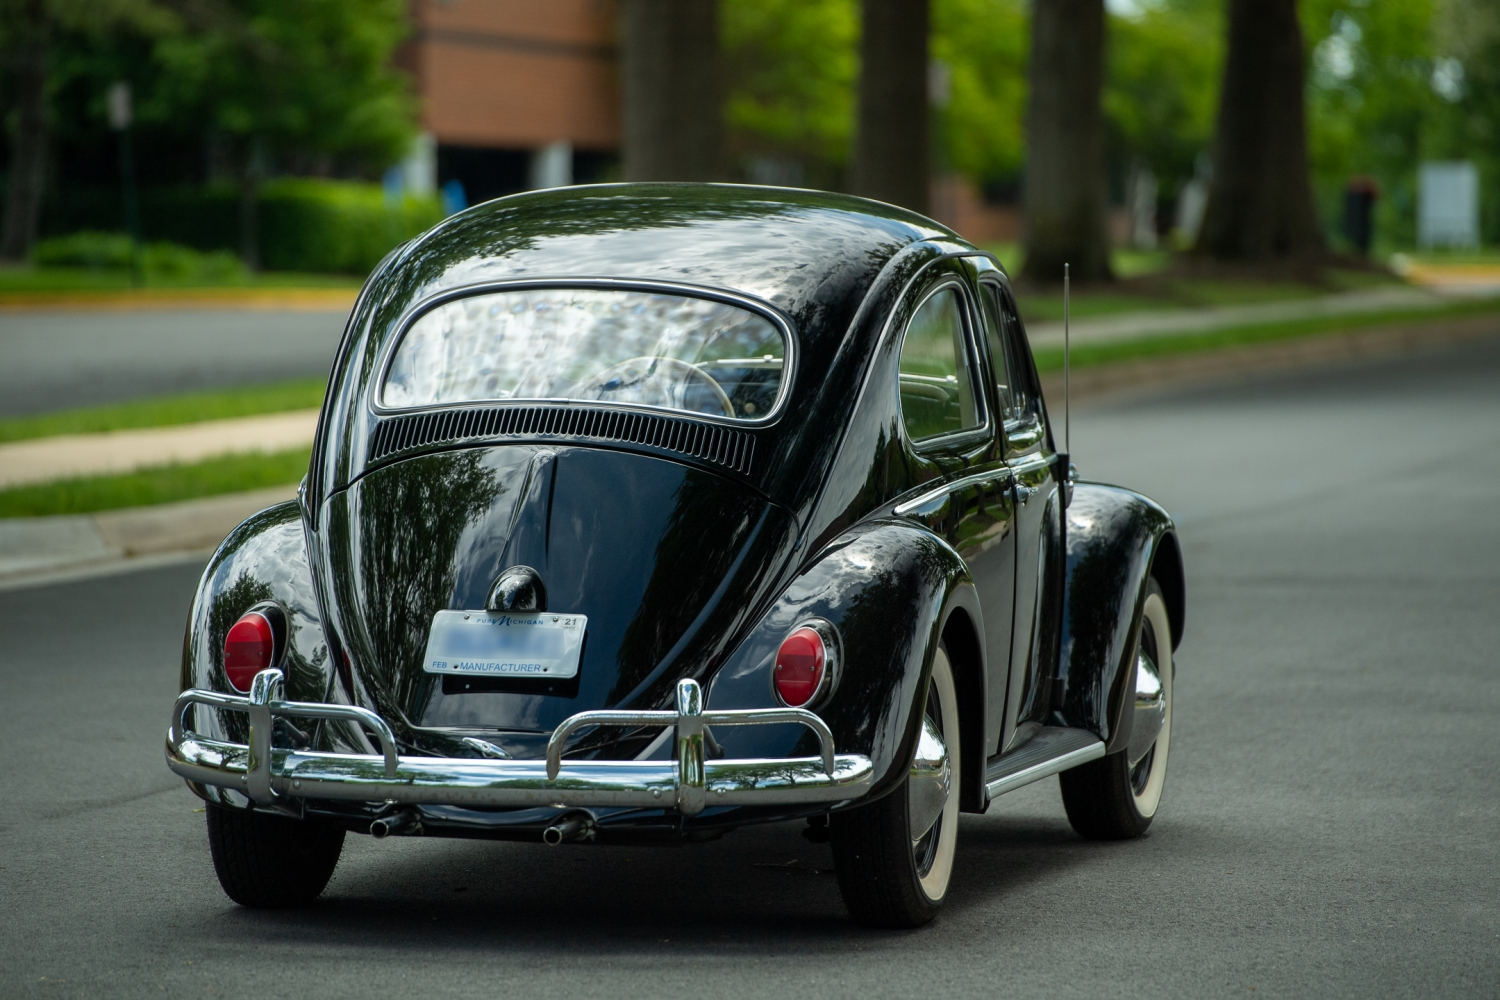 The_Volkswagen_Max_Beetle-Small-11991